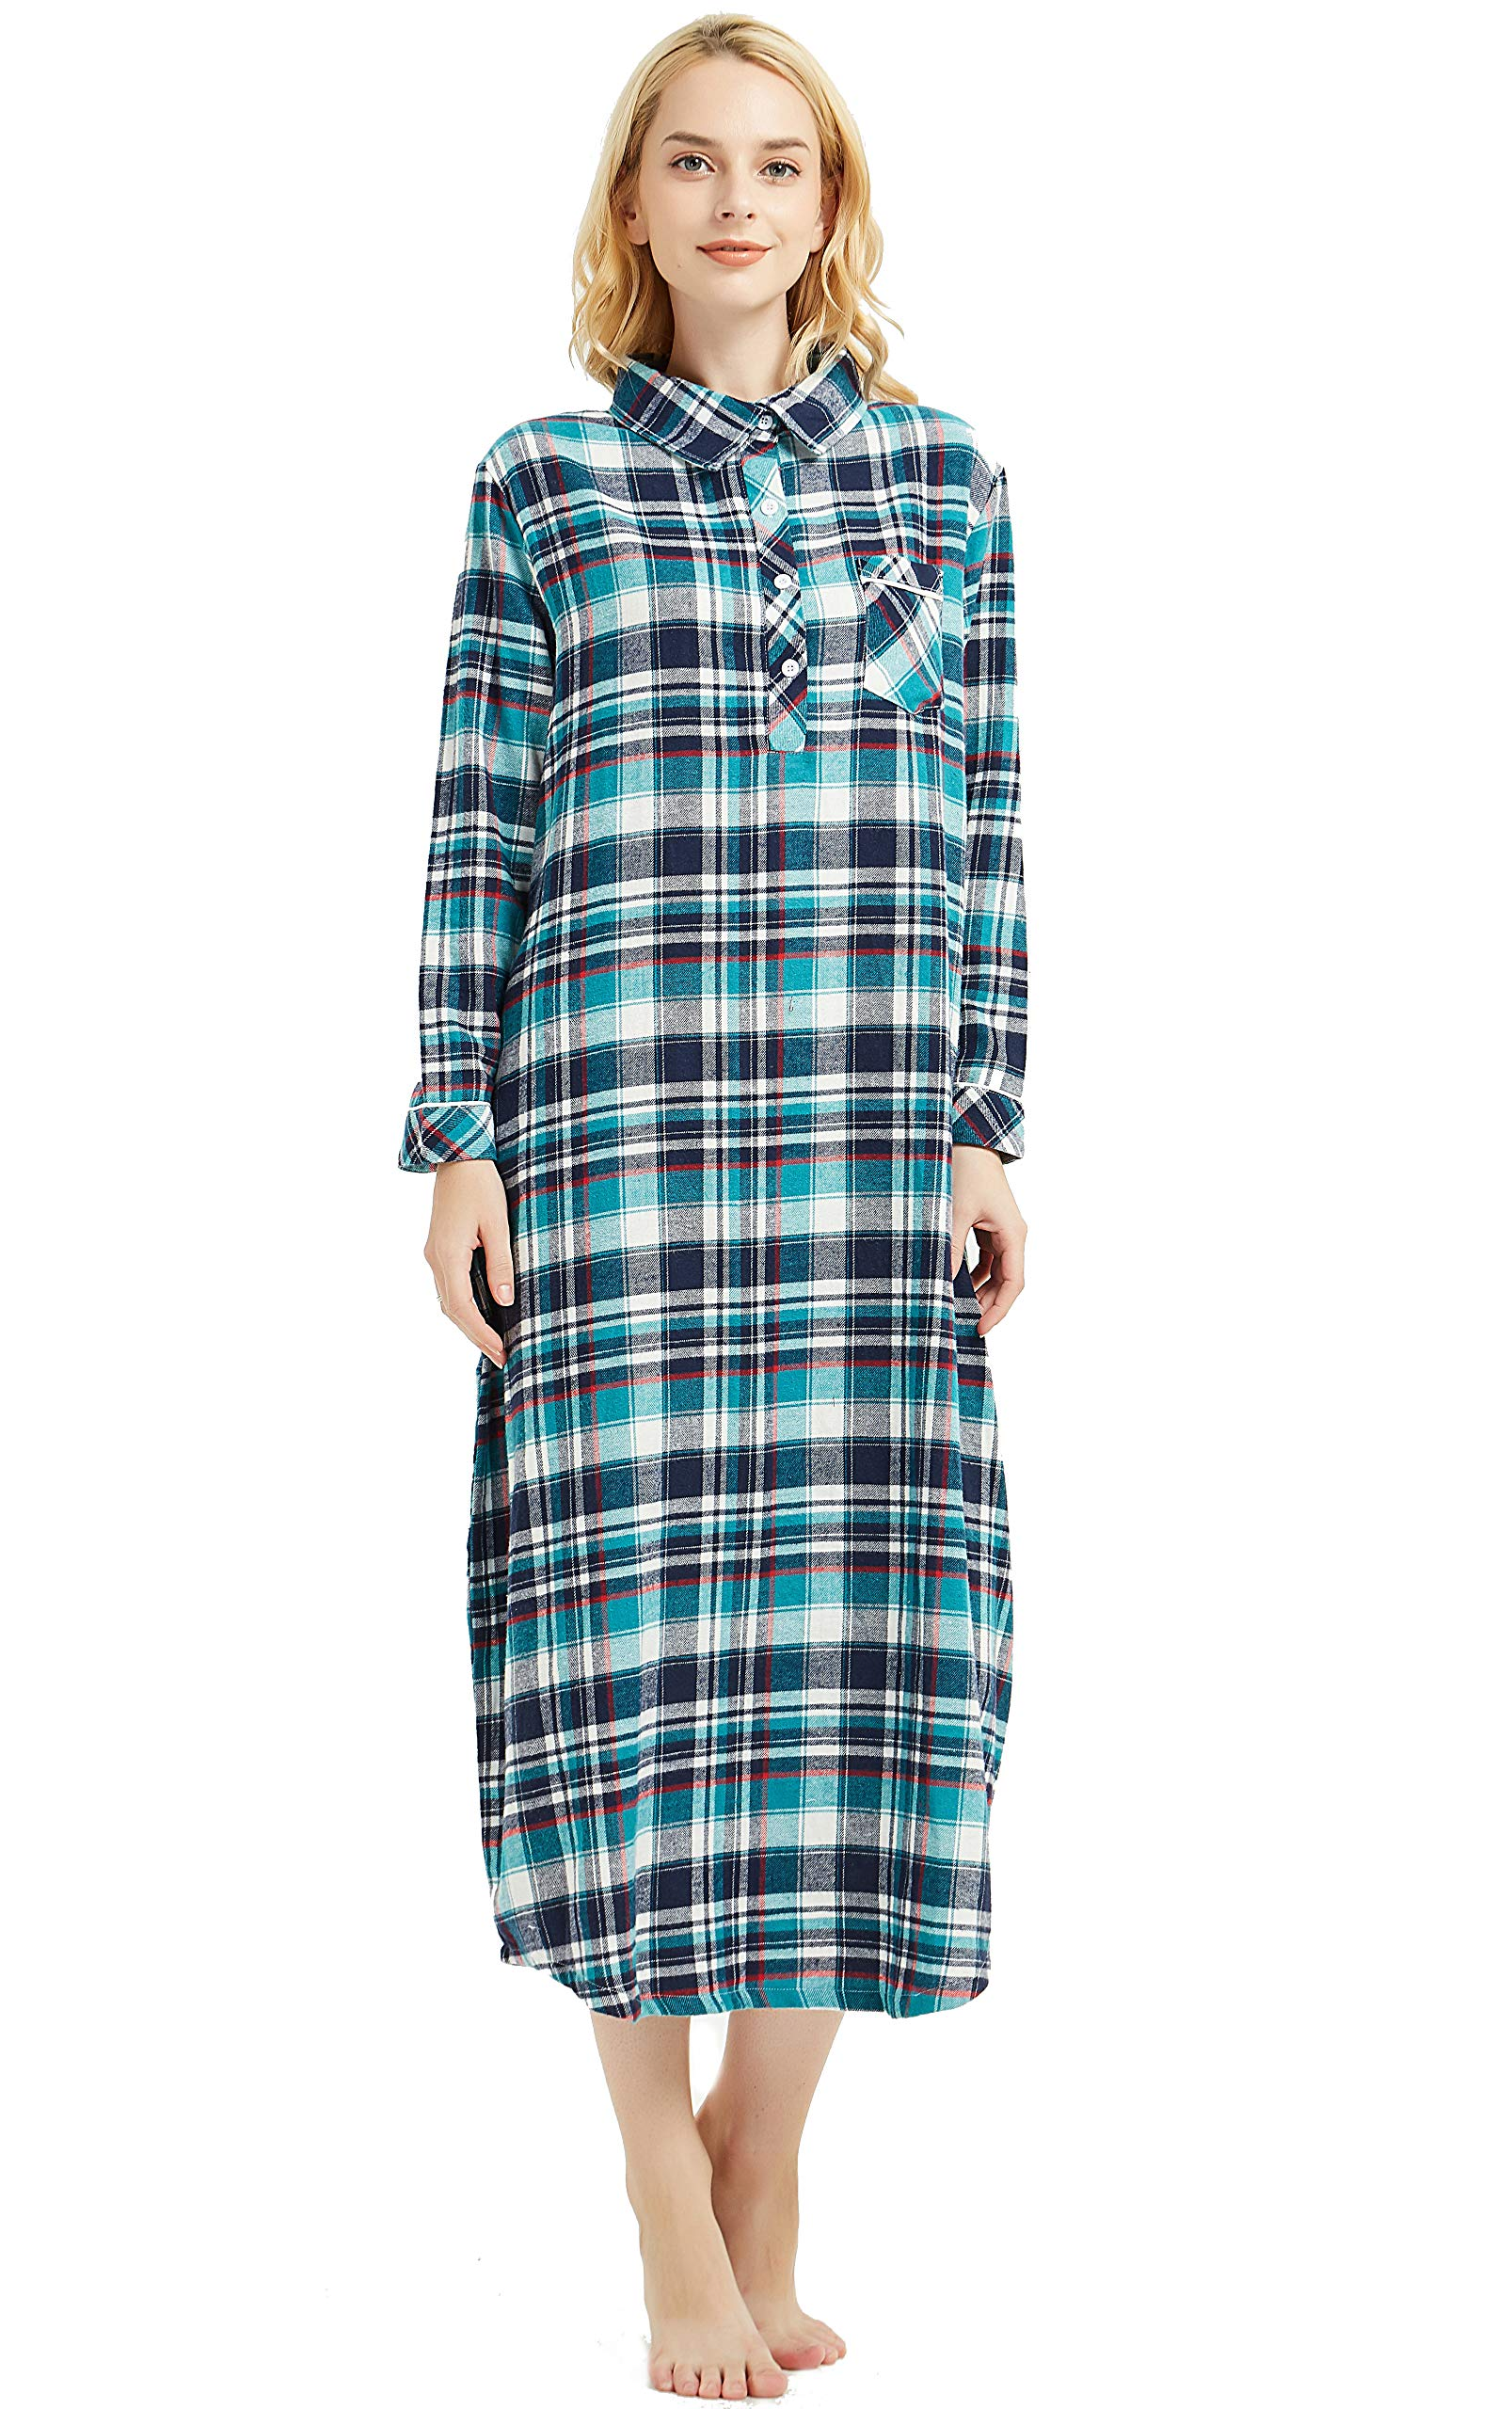 4629219841 Amoy madrola Women s Long Sleeve Plaid Flannel Nightgown Cotton Full Length  Sleepwear SY291-Green-M